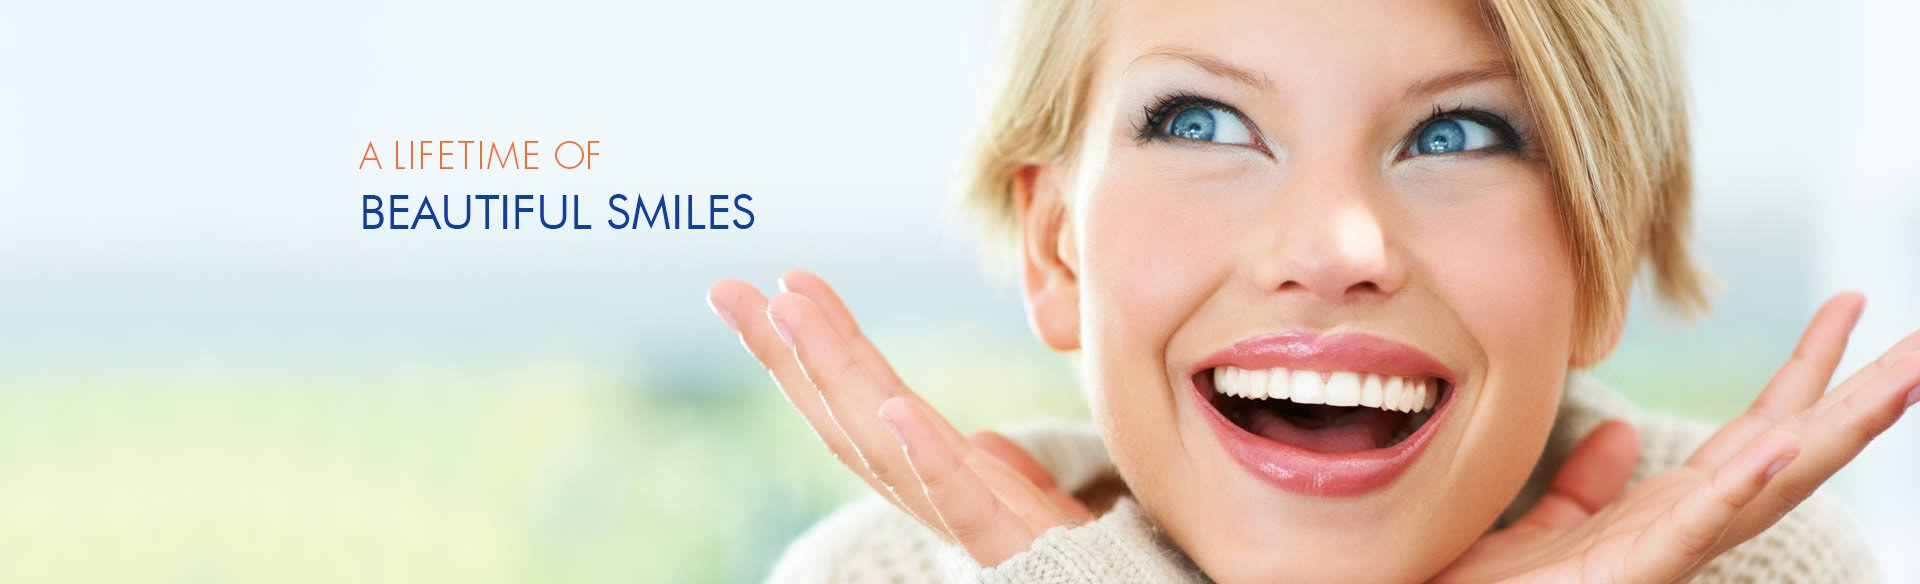 Dr. Carlos Garcia, Bright Smiles Dental Studio Image Of A lifetime of Beautiful Smile